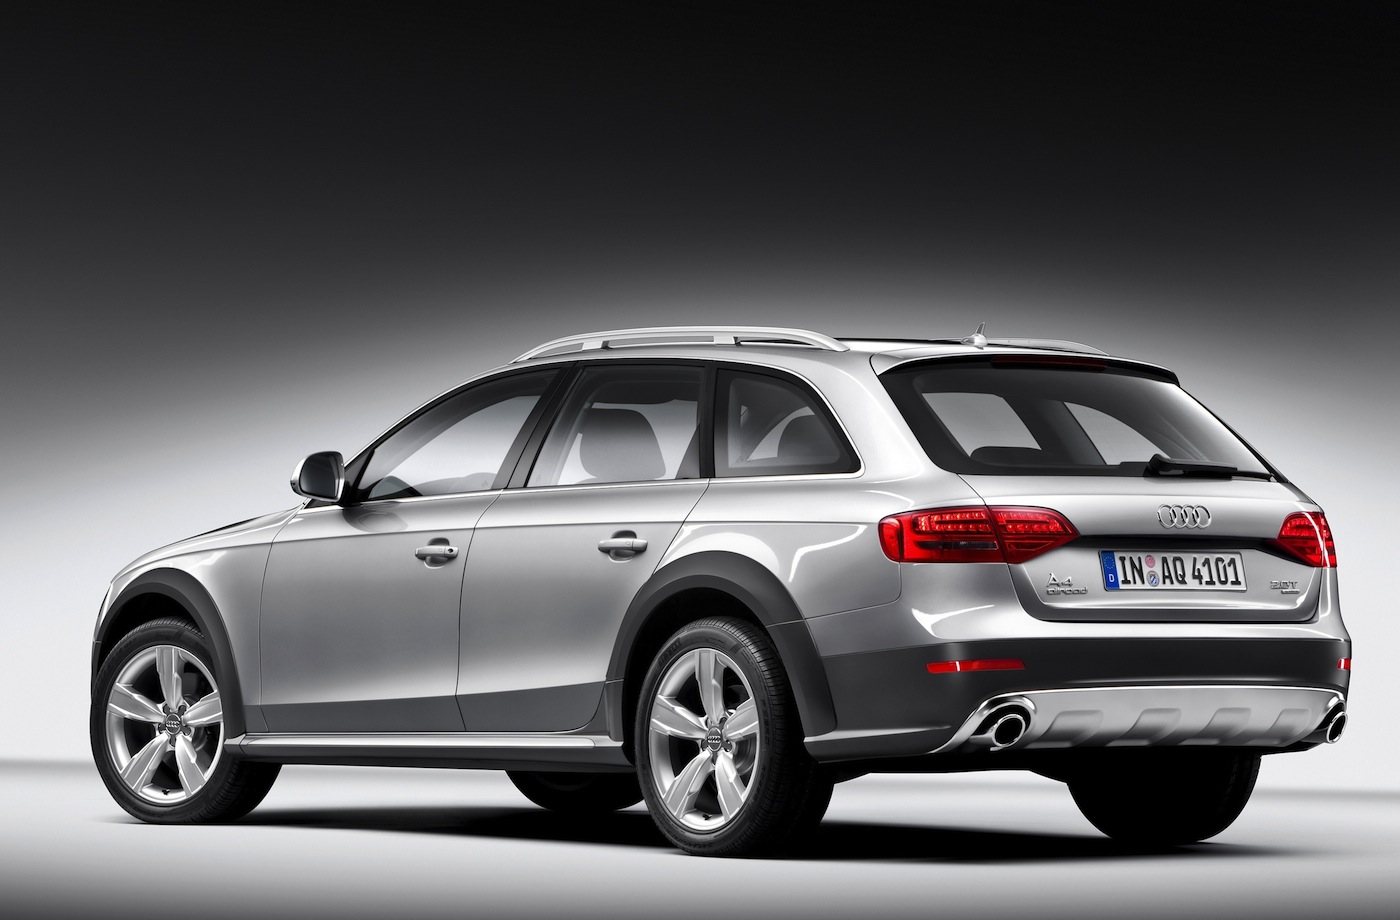 audi a4 allroad quotazioni usato listino audi a4 allroad usata. Black Bedroom Furniture Sets. Home Design Ideas